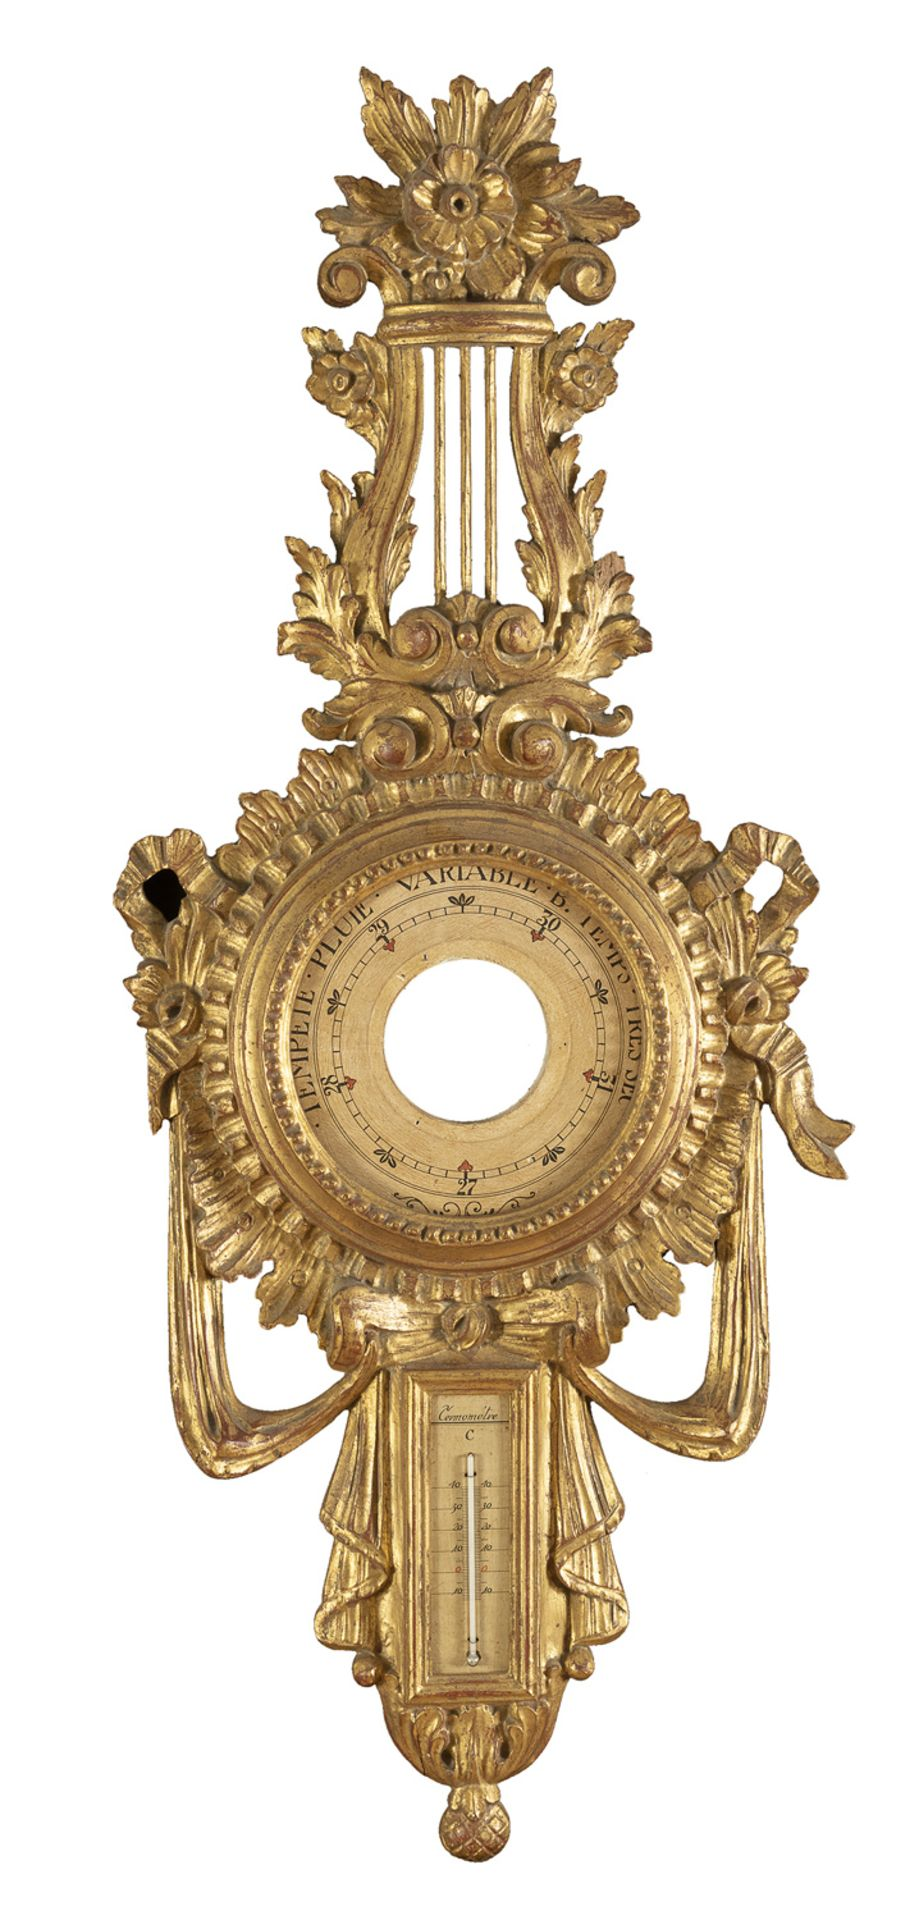 BAROMETER SUPPORT EARLY 20TH CENTURY